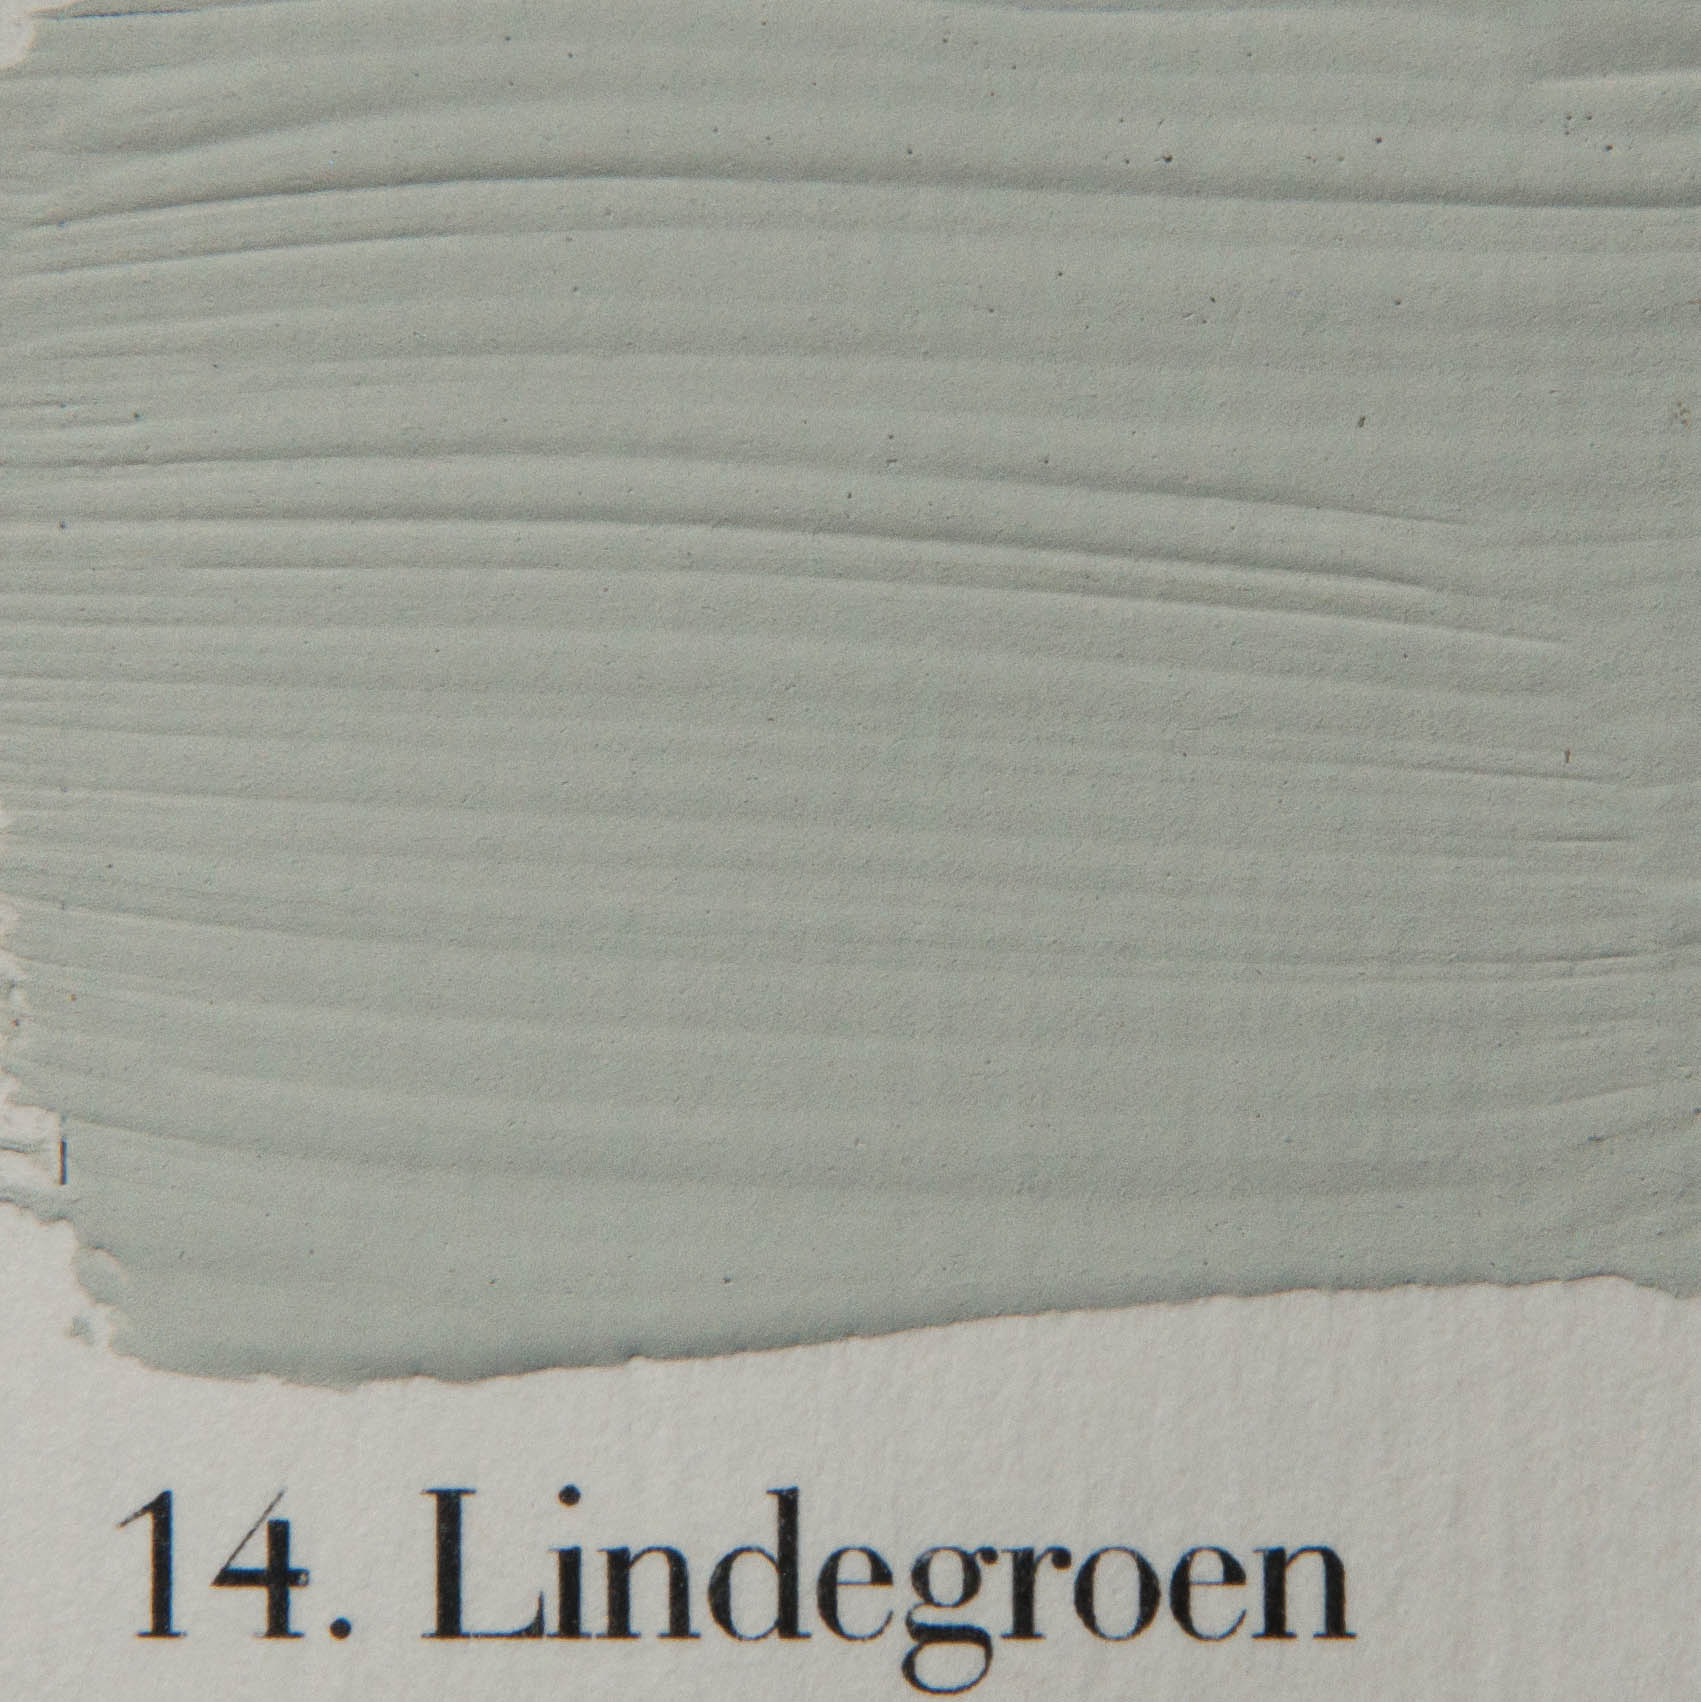 'l Authentique krijtvef 14. Lindegroen